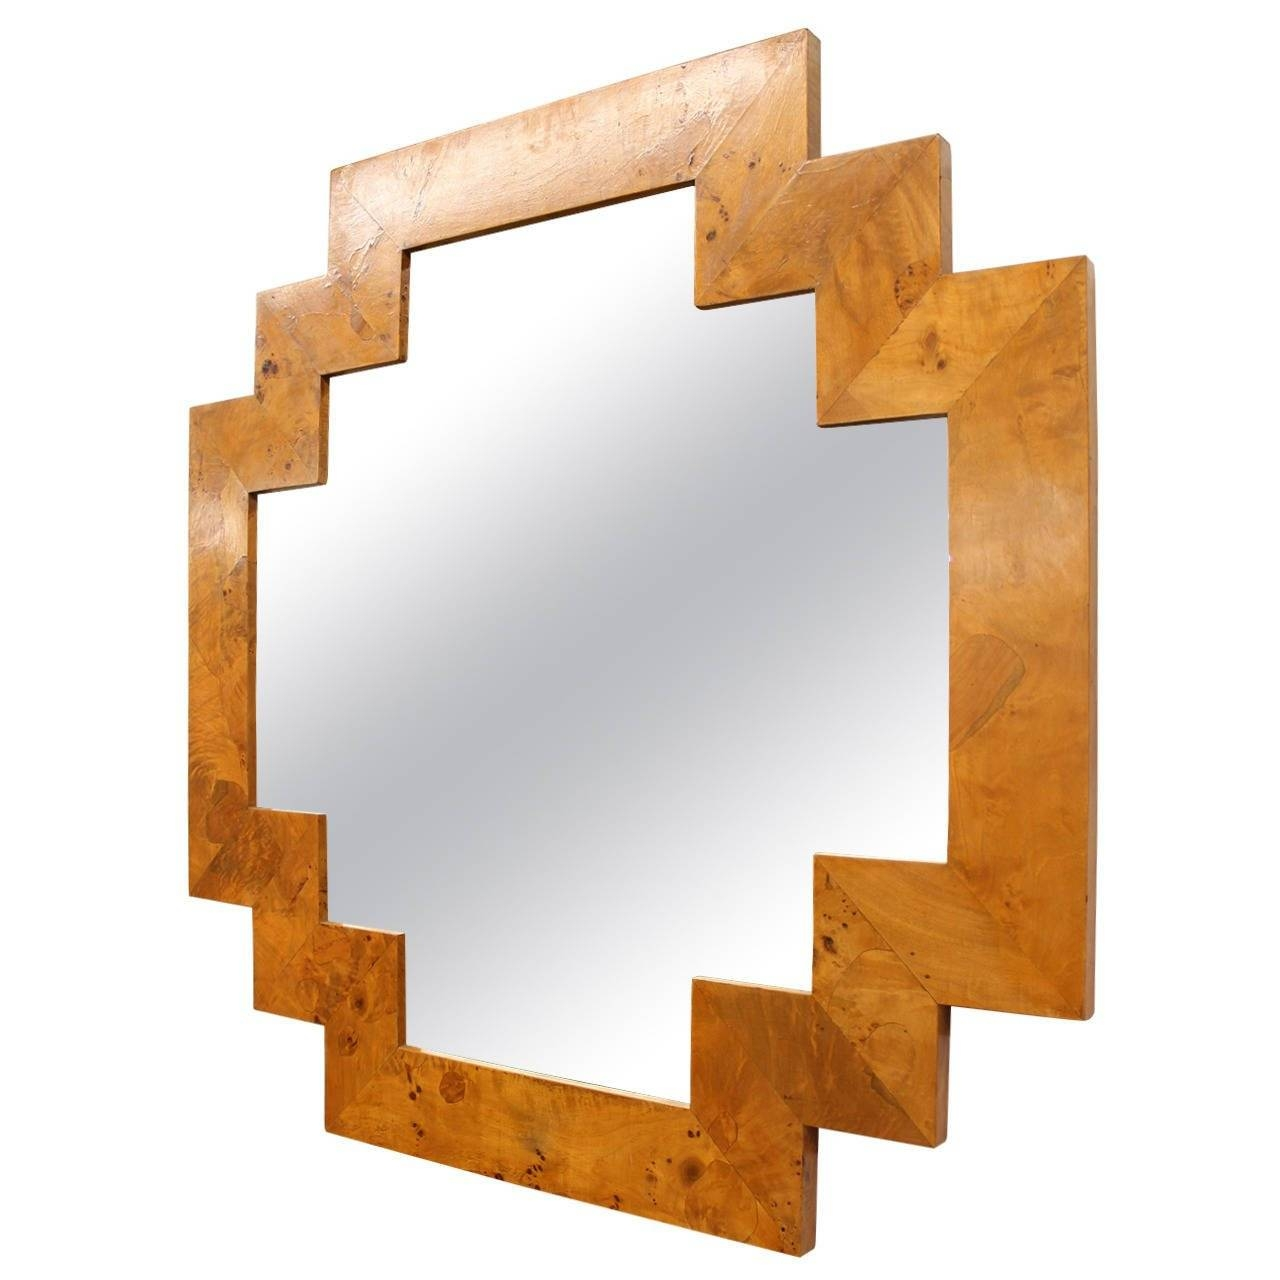 Art Deco Style Geometric Italian Burl Wood Wall Mirror At 1Stdibs intended for Art Deco Wall Mirrors (Image 5 of 25)